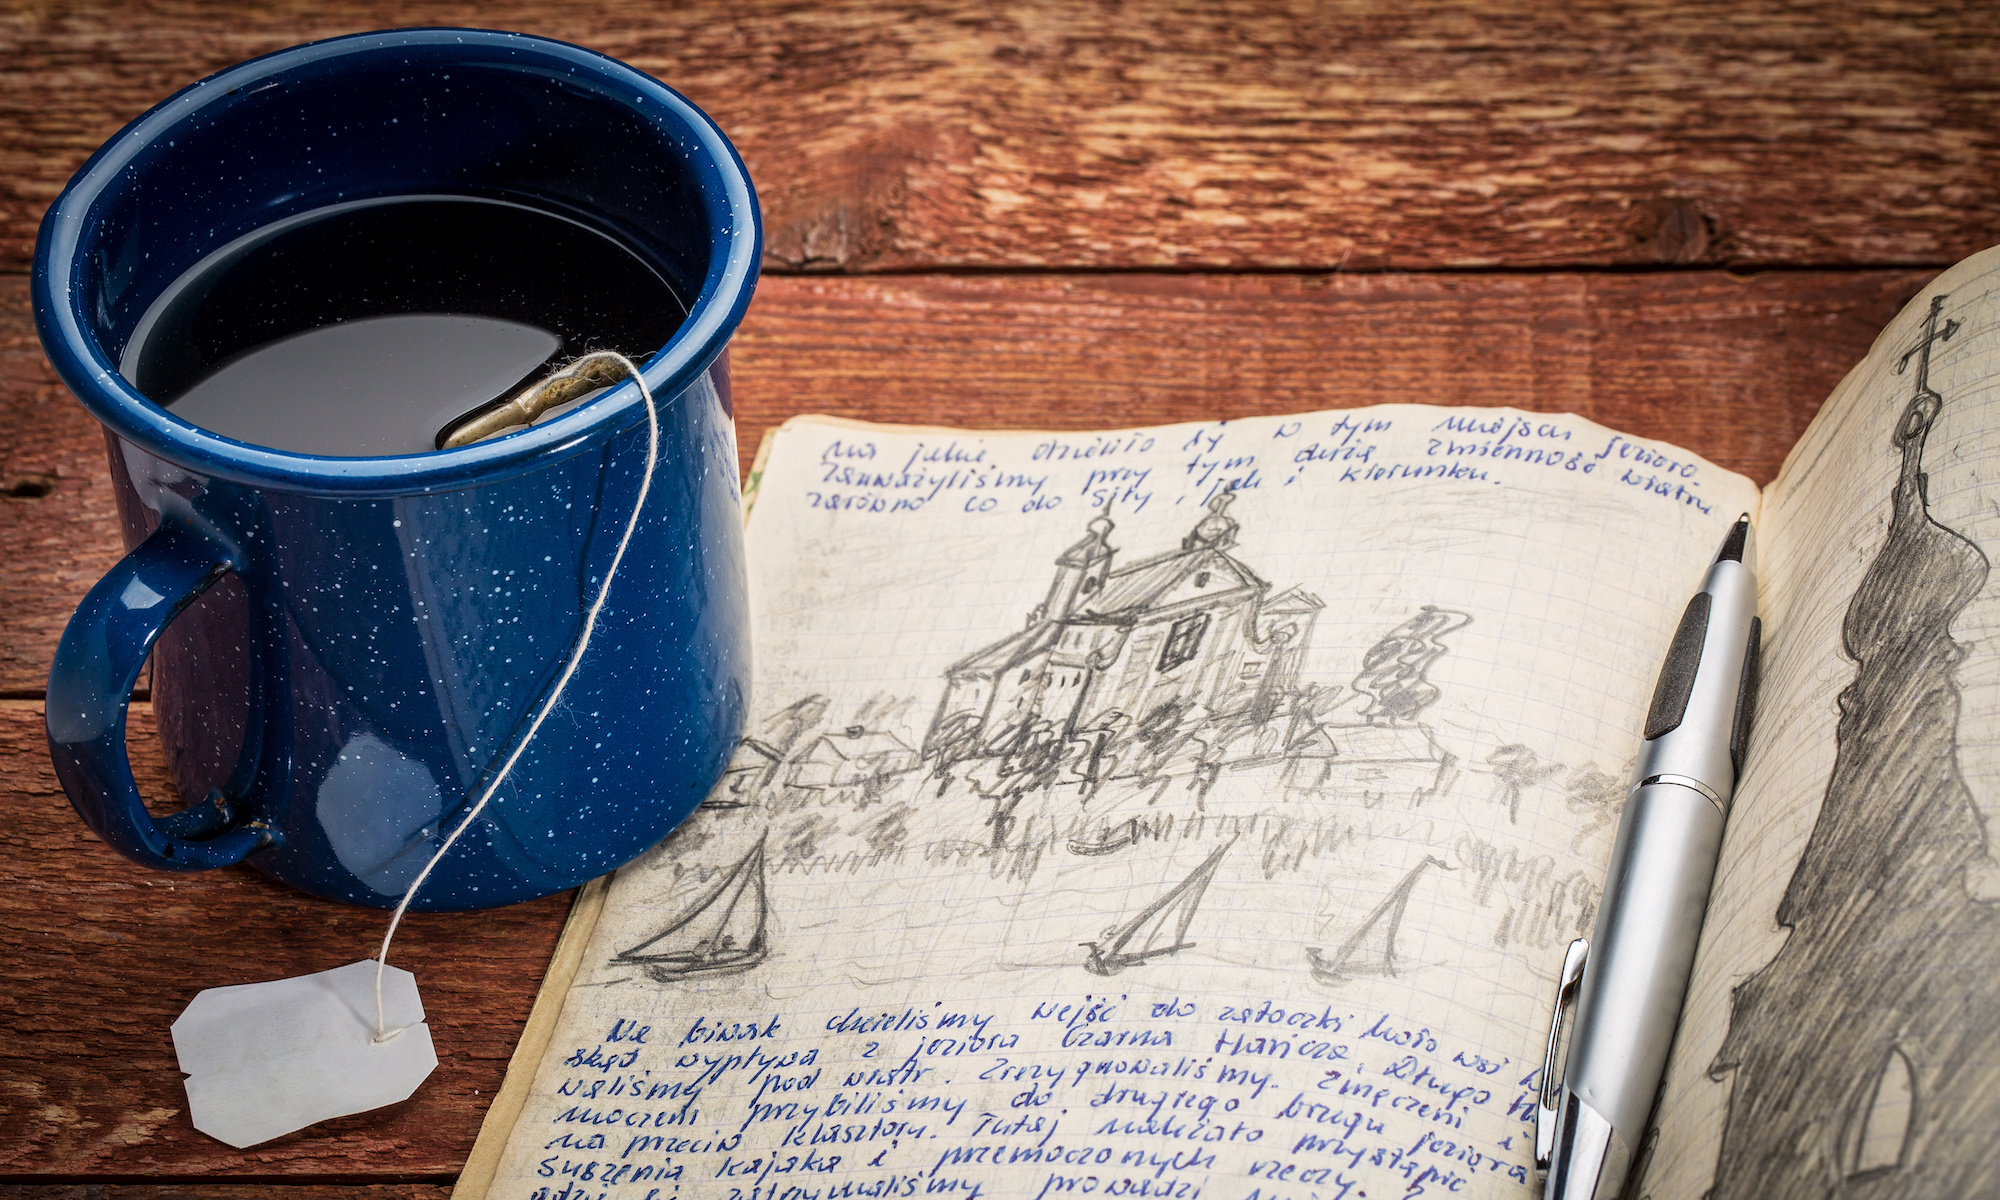 journal with handwriting and drawing in pencil in a notebook against rustic picnic table with cup of tea